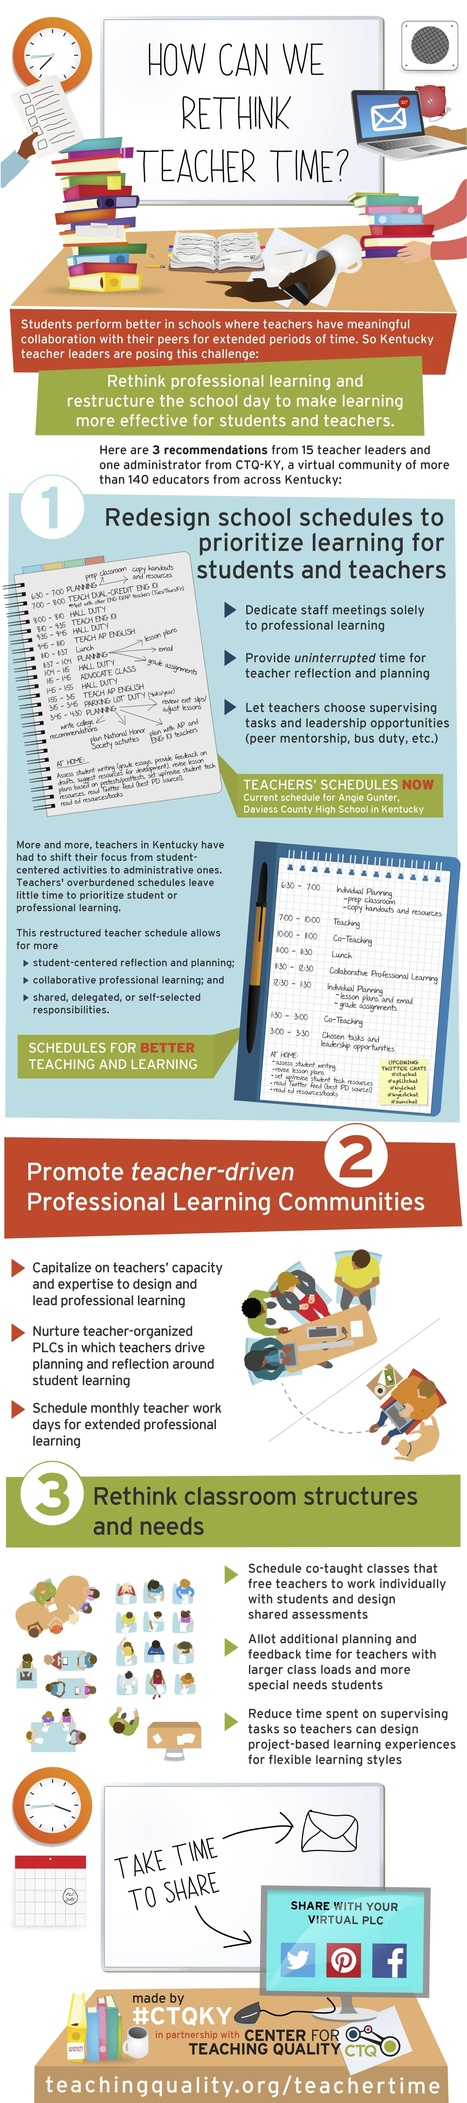 Rethinking Teacher Time Infographic | we-Learning | Scoop.it